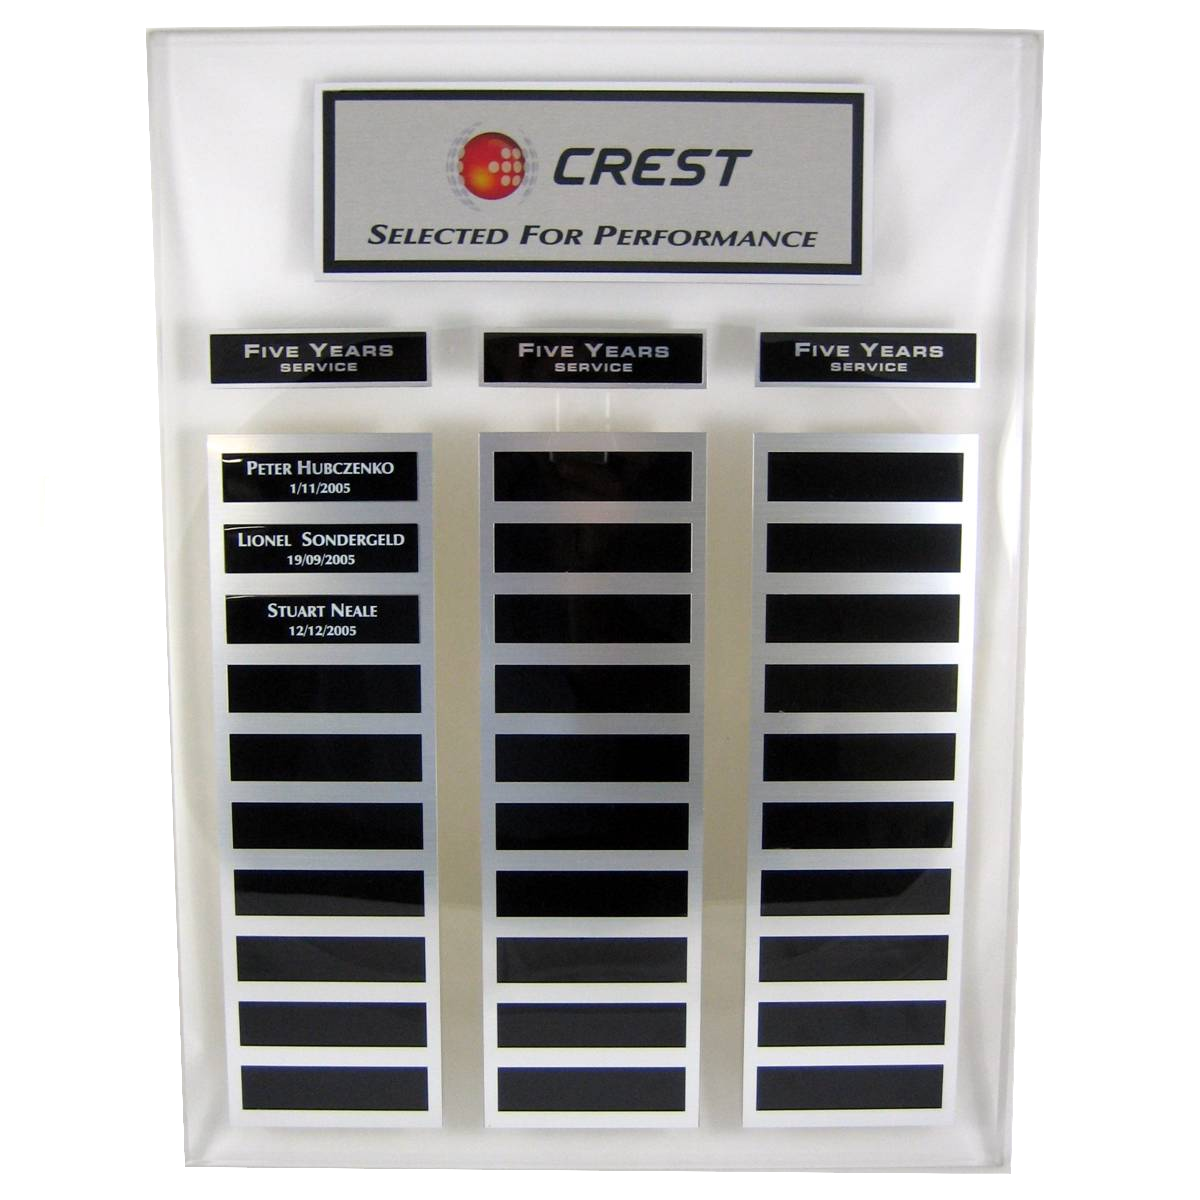 Crest-Electronics-queensland-trophy-distributors-png